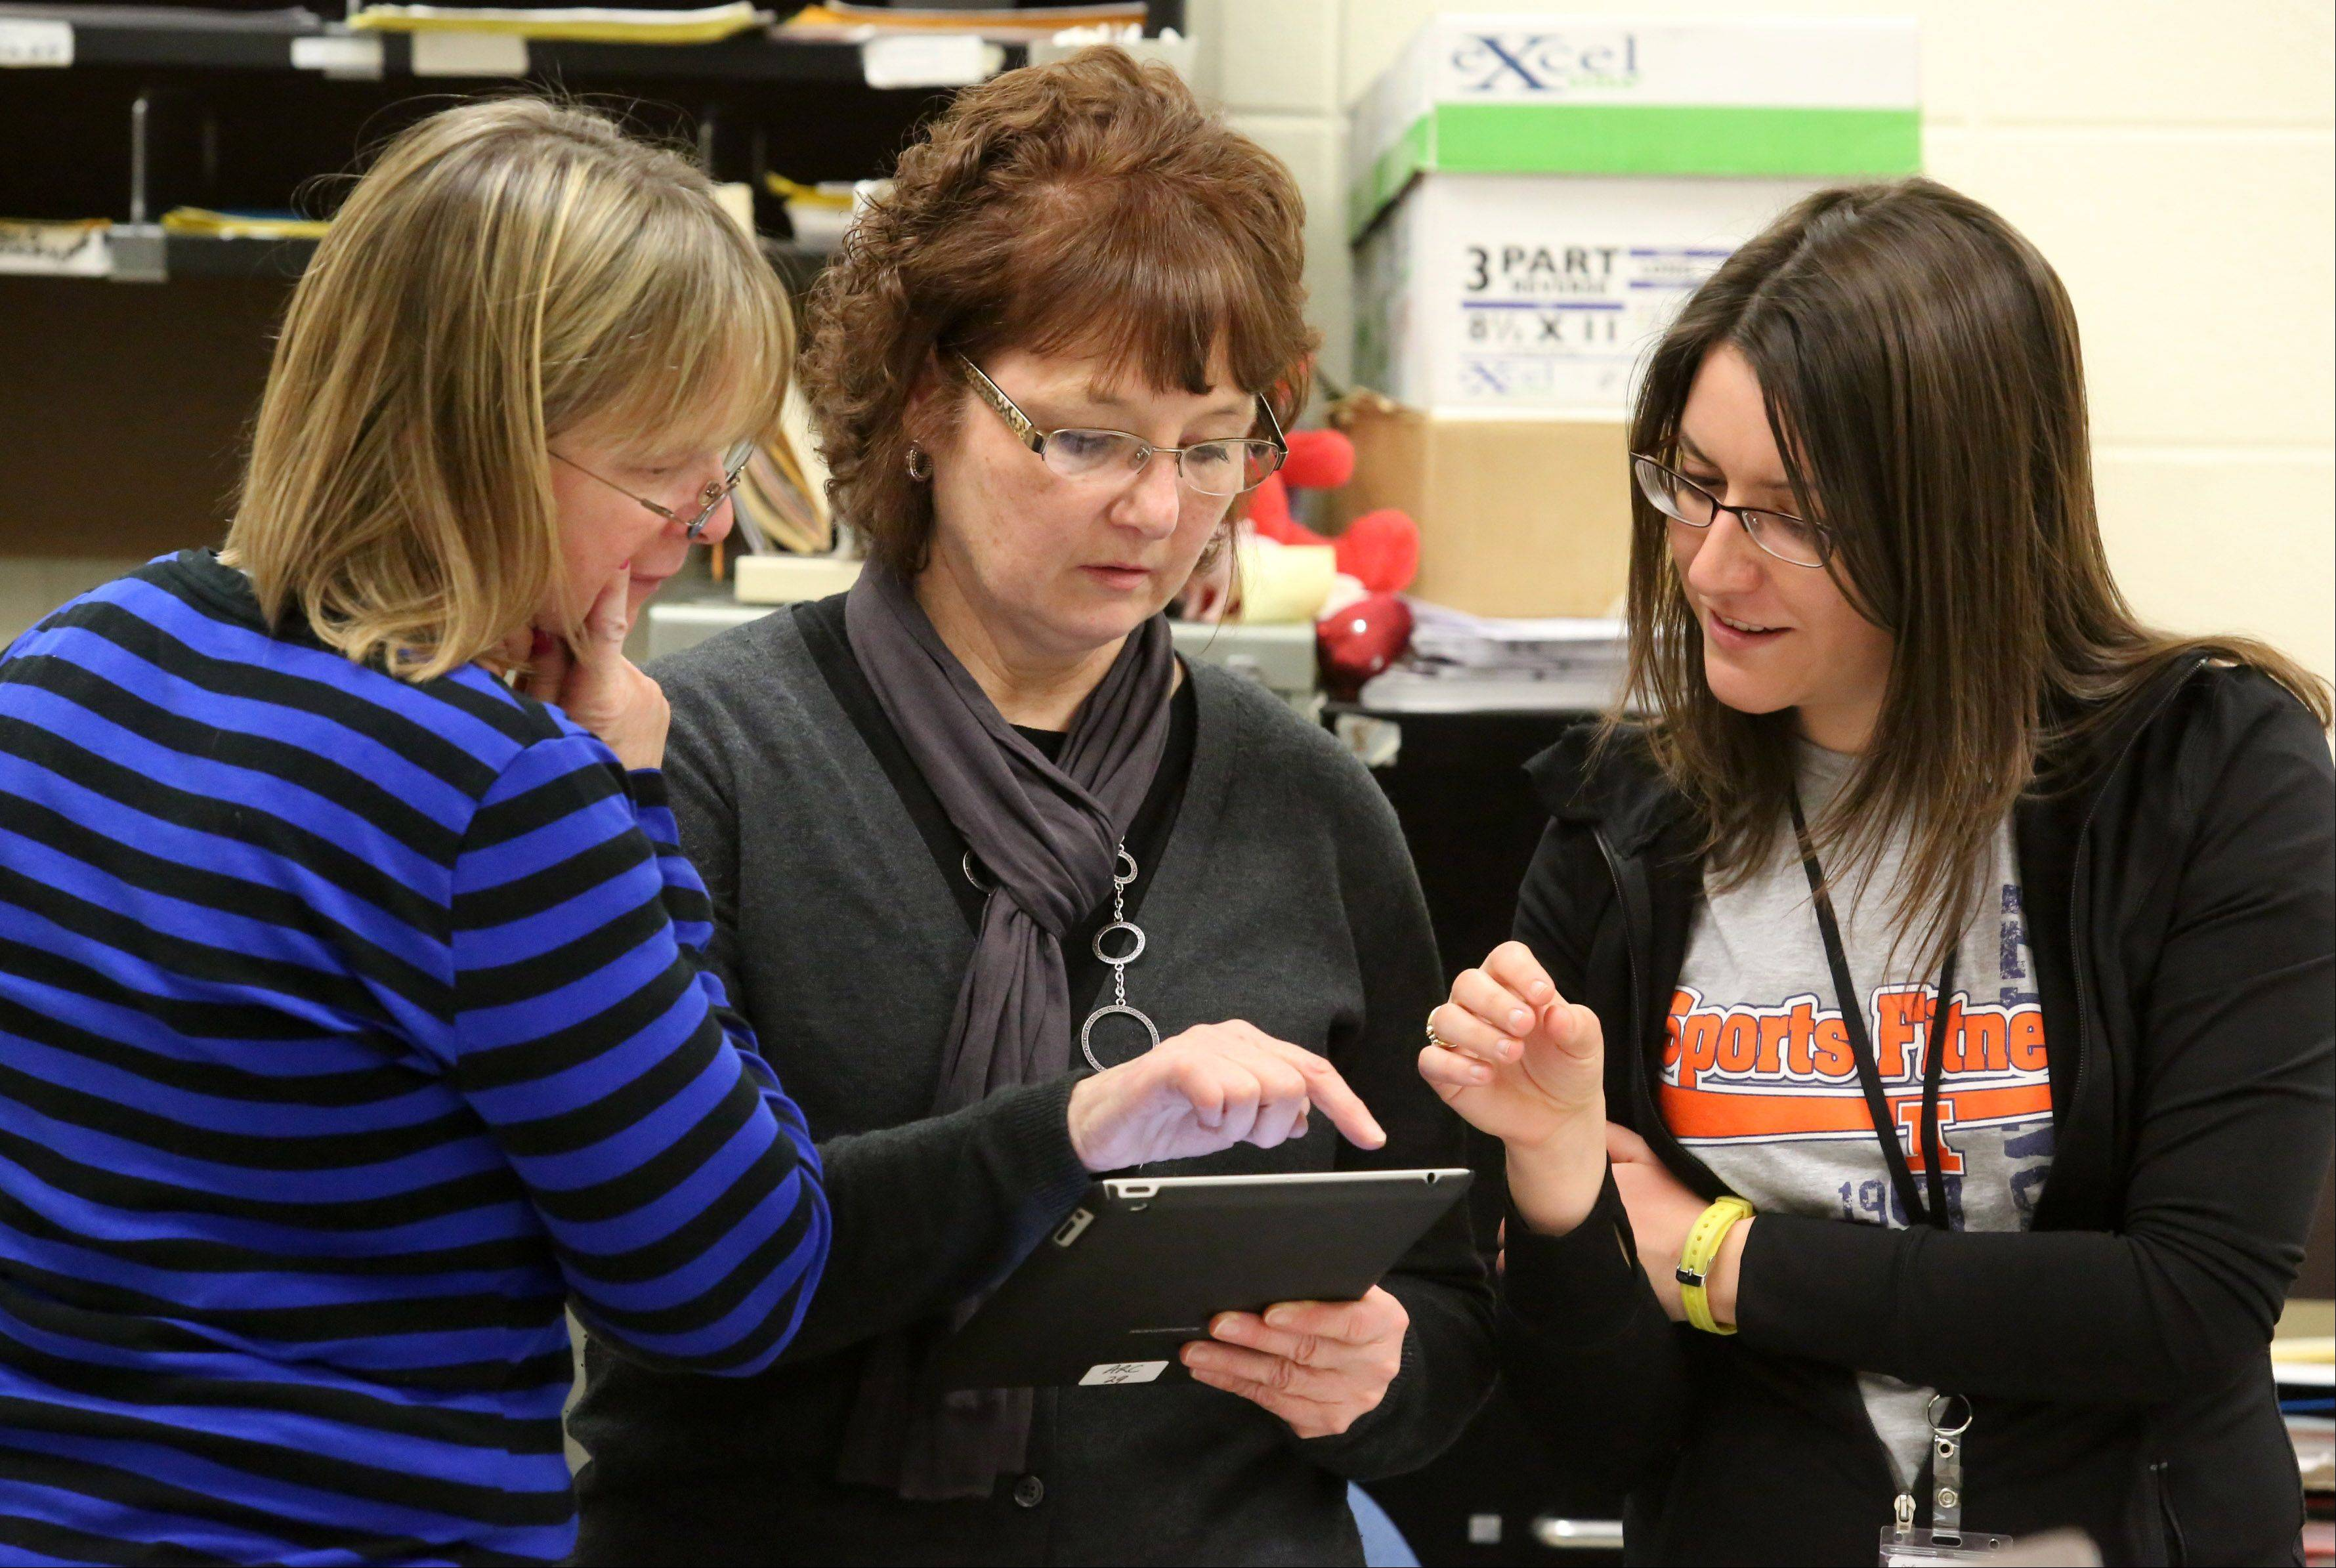 Hersey High School head librarian Katie Alexander, center, discusses how students access their District 214 accounts to complete their homework assignments in a health class with health teacher Sharon Meintzer, left, and student teacher Sarah Rodriguez.